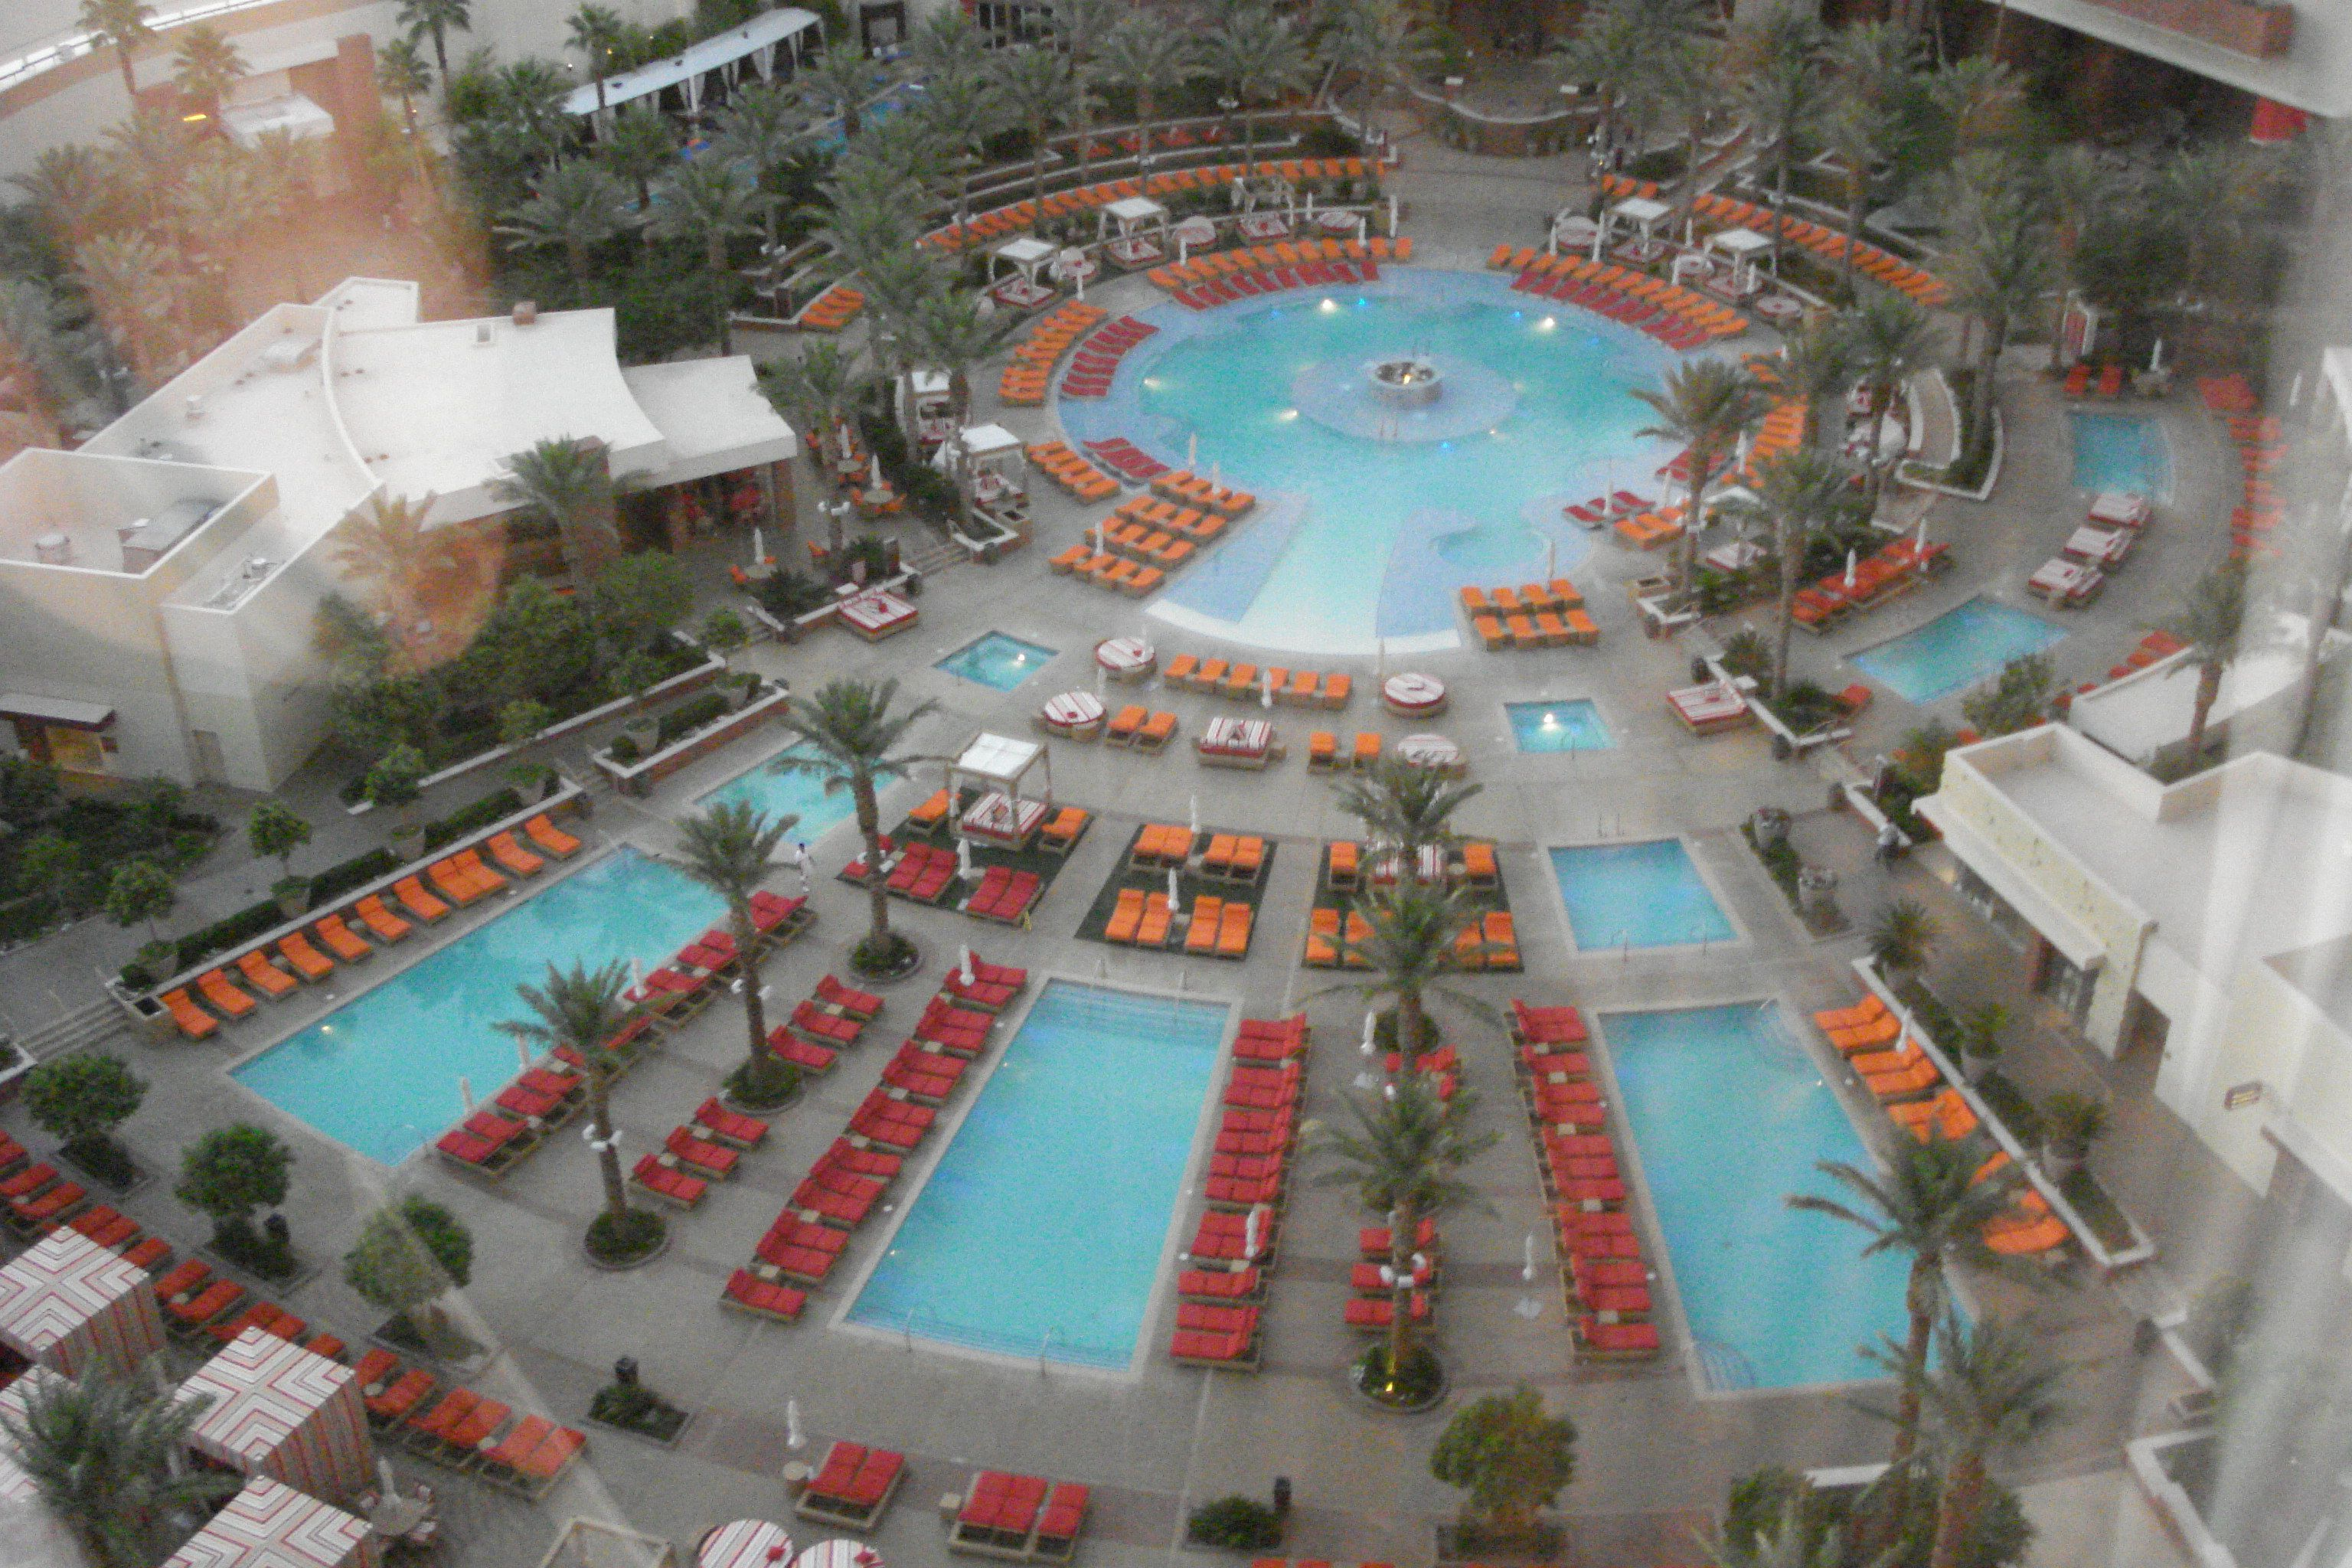 Red rock casino pool pictures